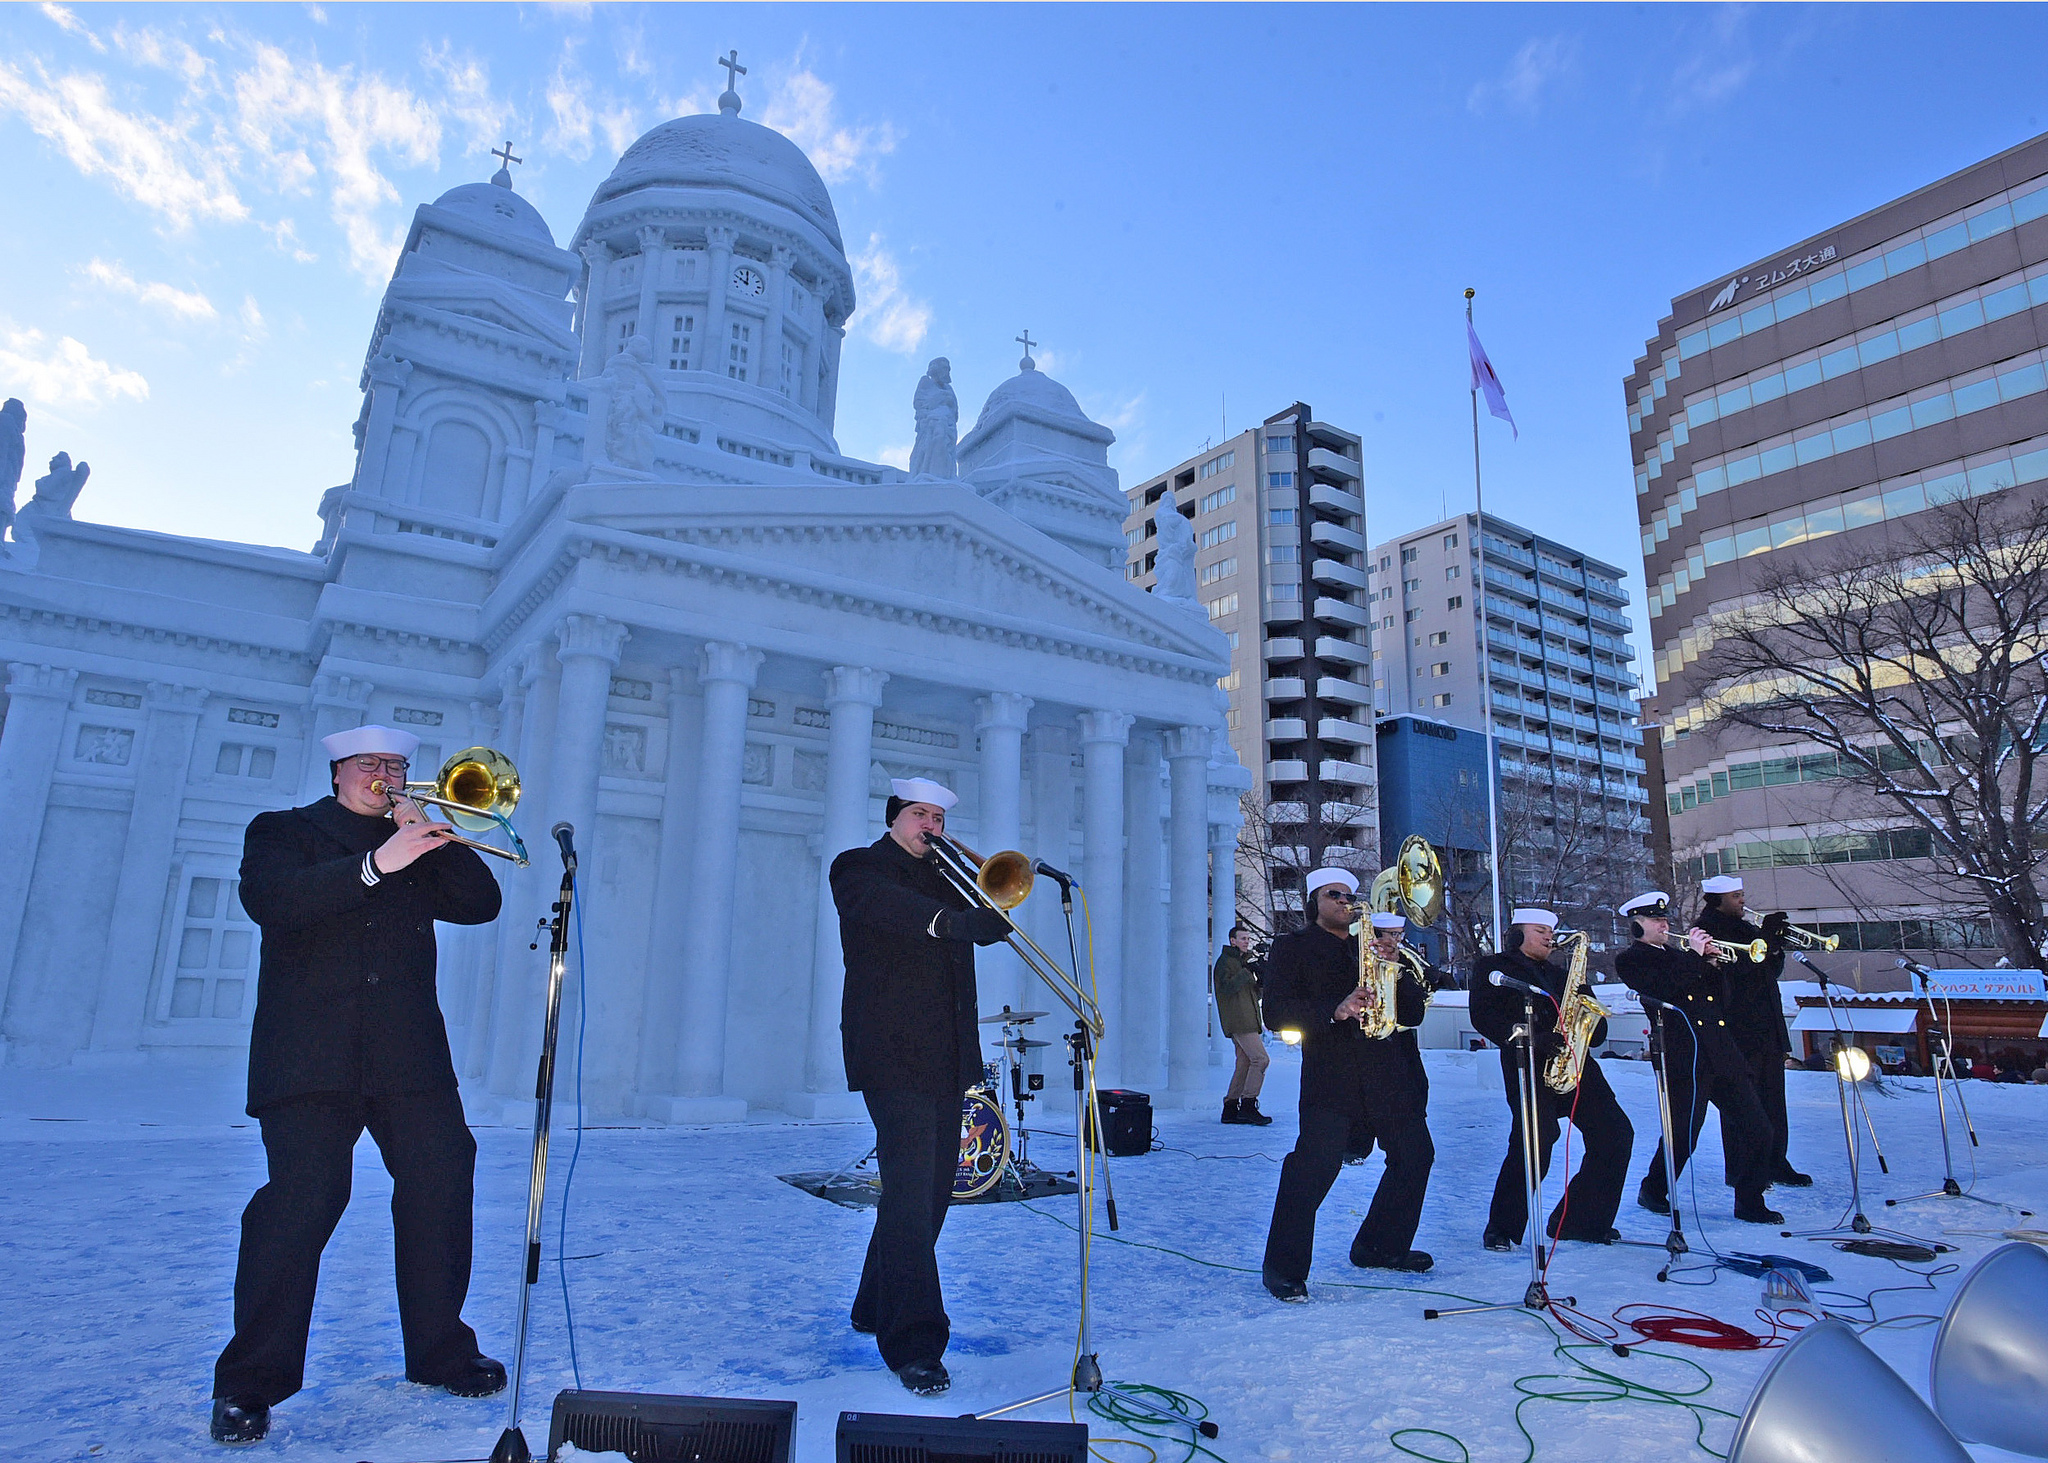 The U.S. 7th Fleet Band ensemble, Broadside Brass Band, performs at the 70th annual Sapporo Snow Festival on Feb. 9, 2019. (Mass Communication Specialist 2nd Class Adam K. Thomas/Navy)